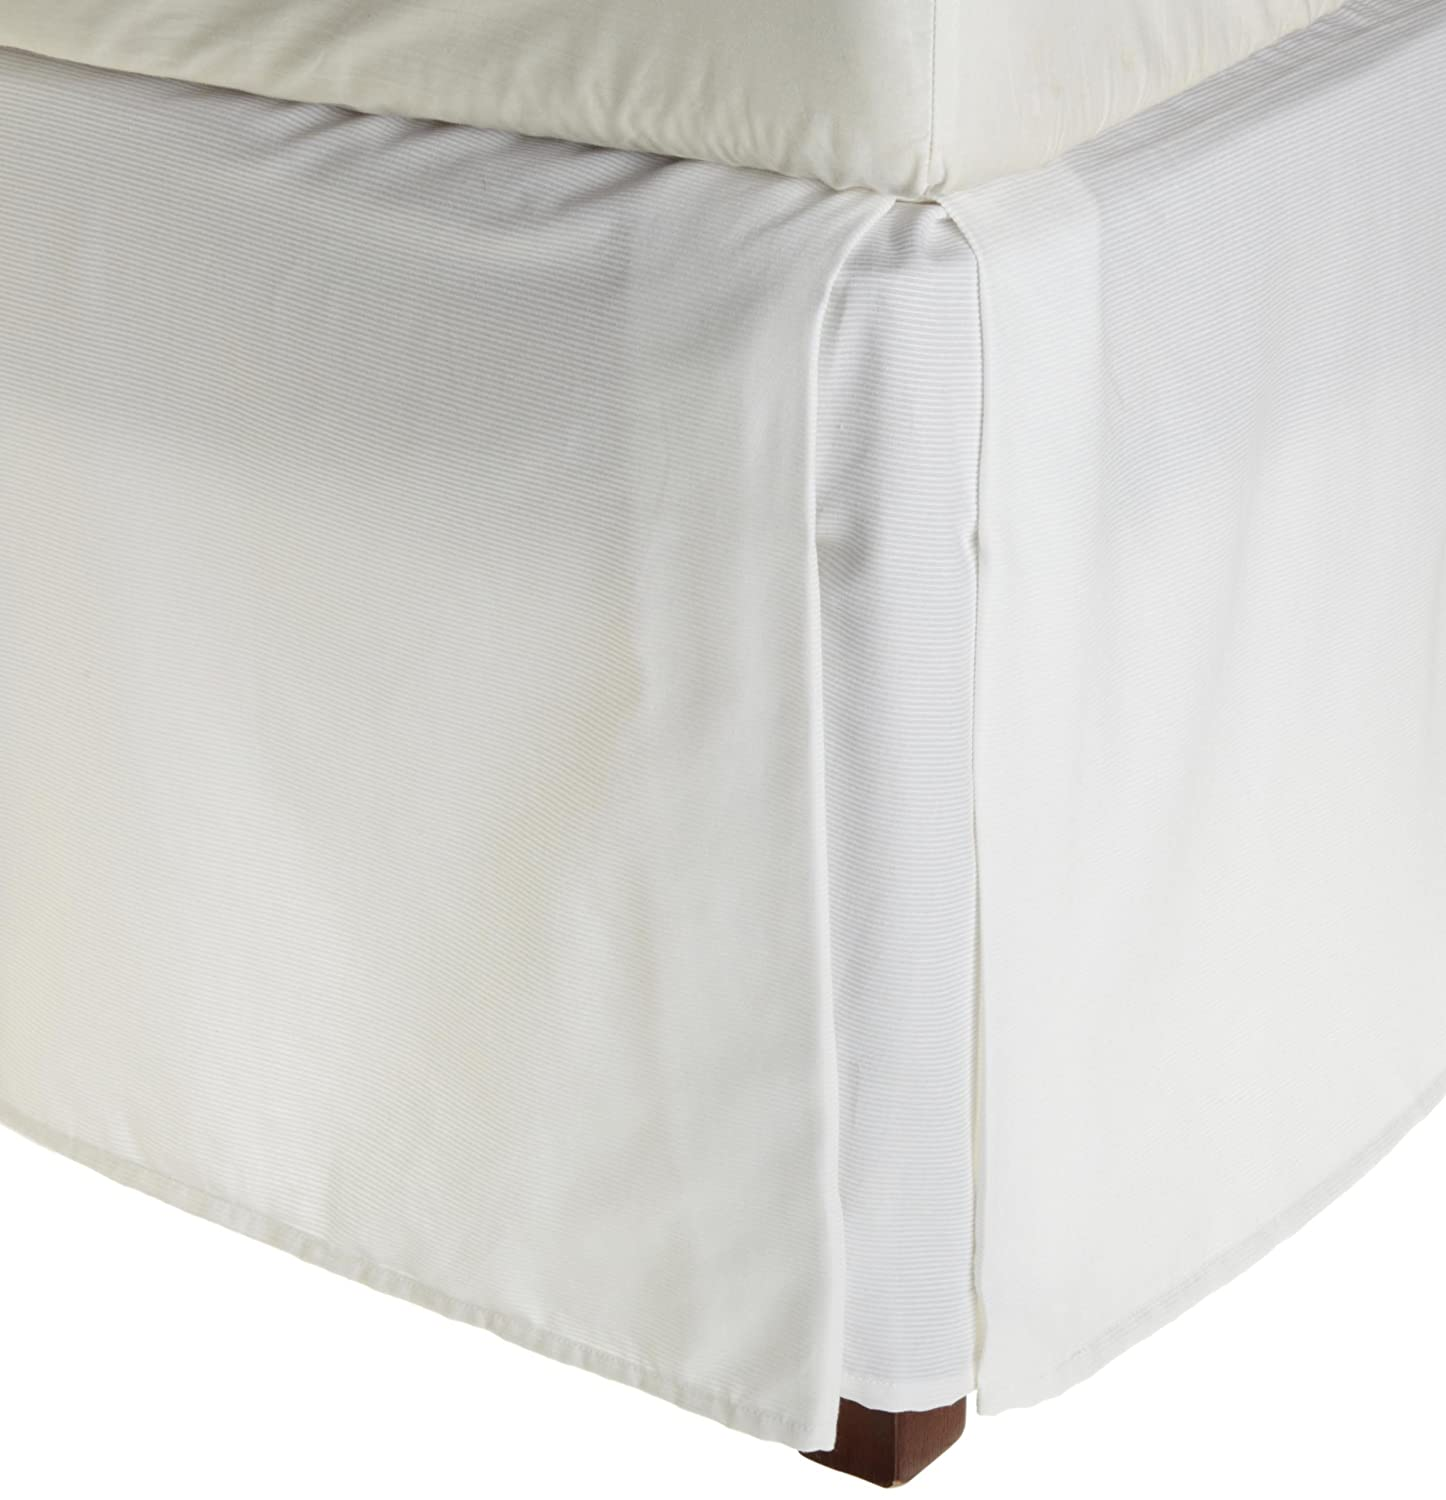 to vera sealy customer perfect queen box help mattress and provide wang with utmost low the spring